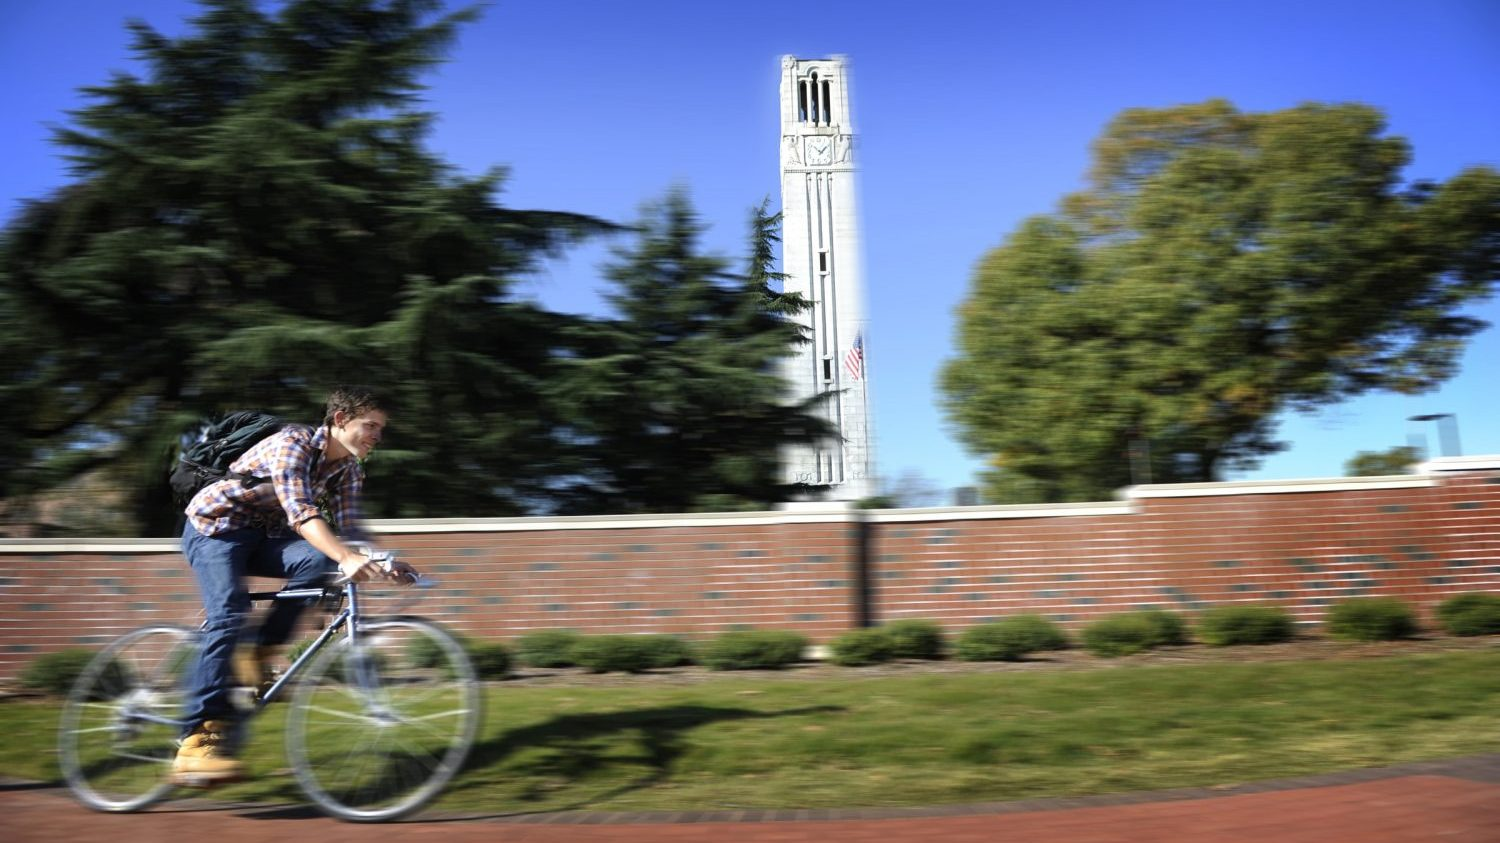 A student rides his bike by the Belltower.